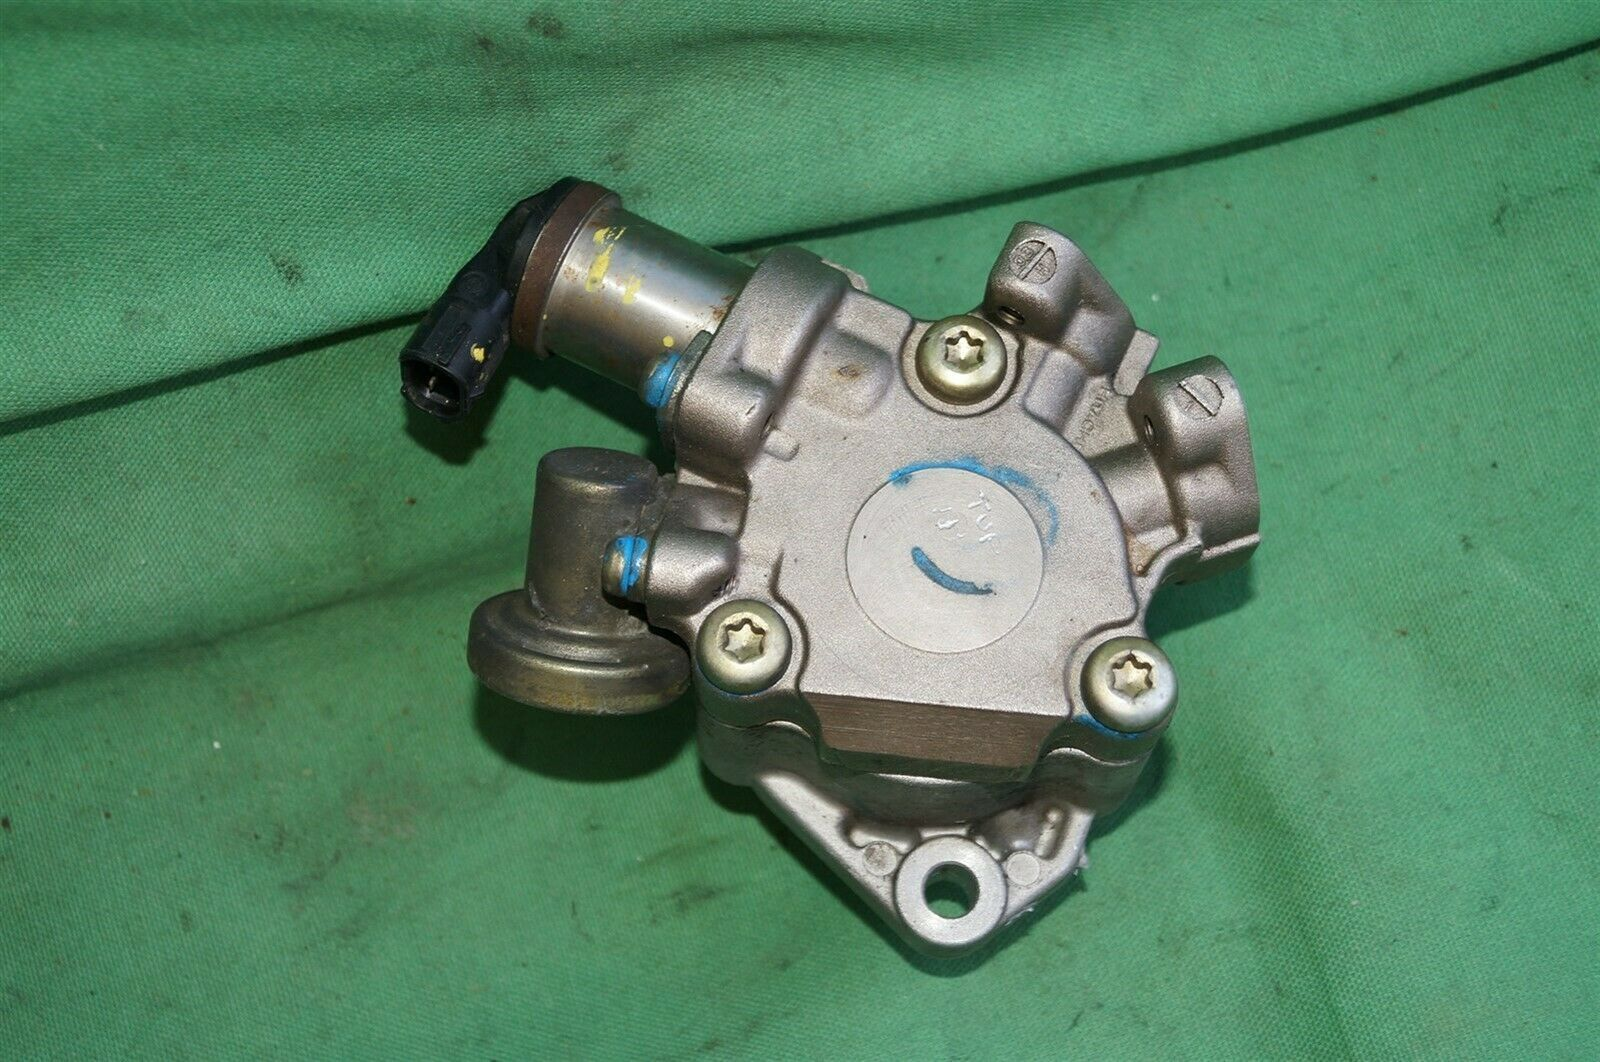 2004 Isuzu Axxiom Axiom Rodeo 3.5L Direct Injection High Pressure Fuel Pump GDi